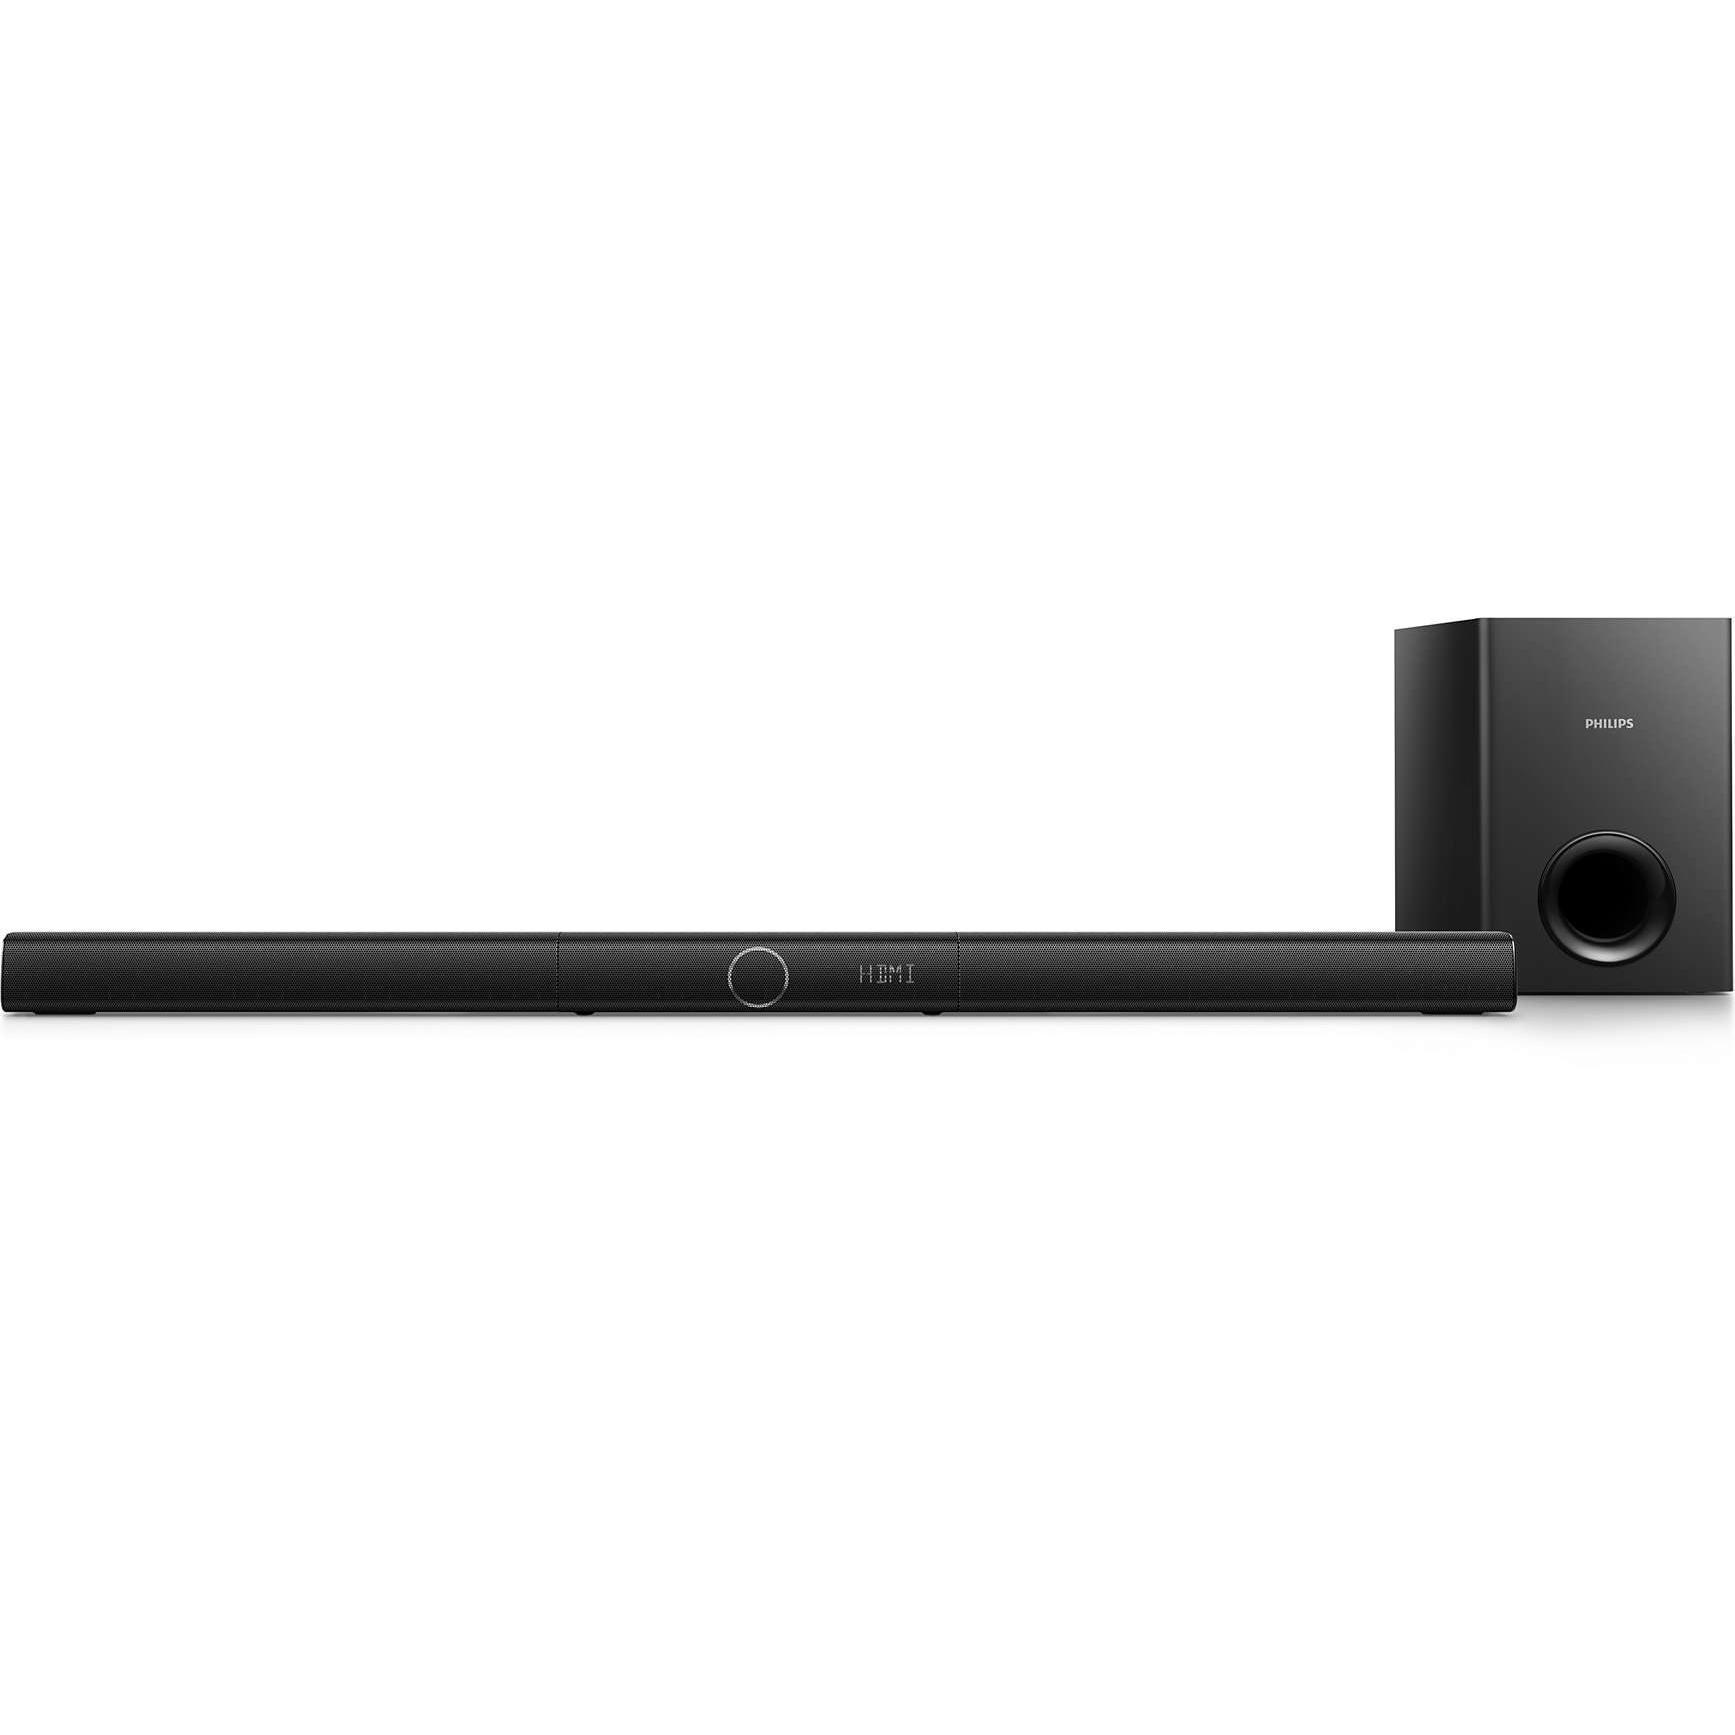 Barre de son Bluetooth + caisson de basses Philips HTL2183B/12